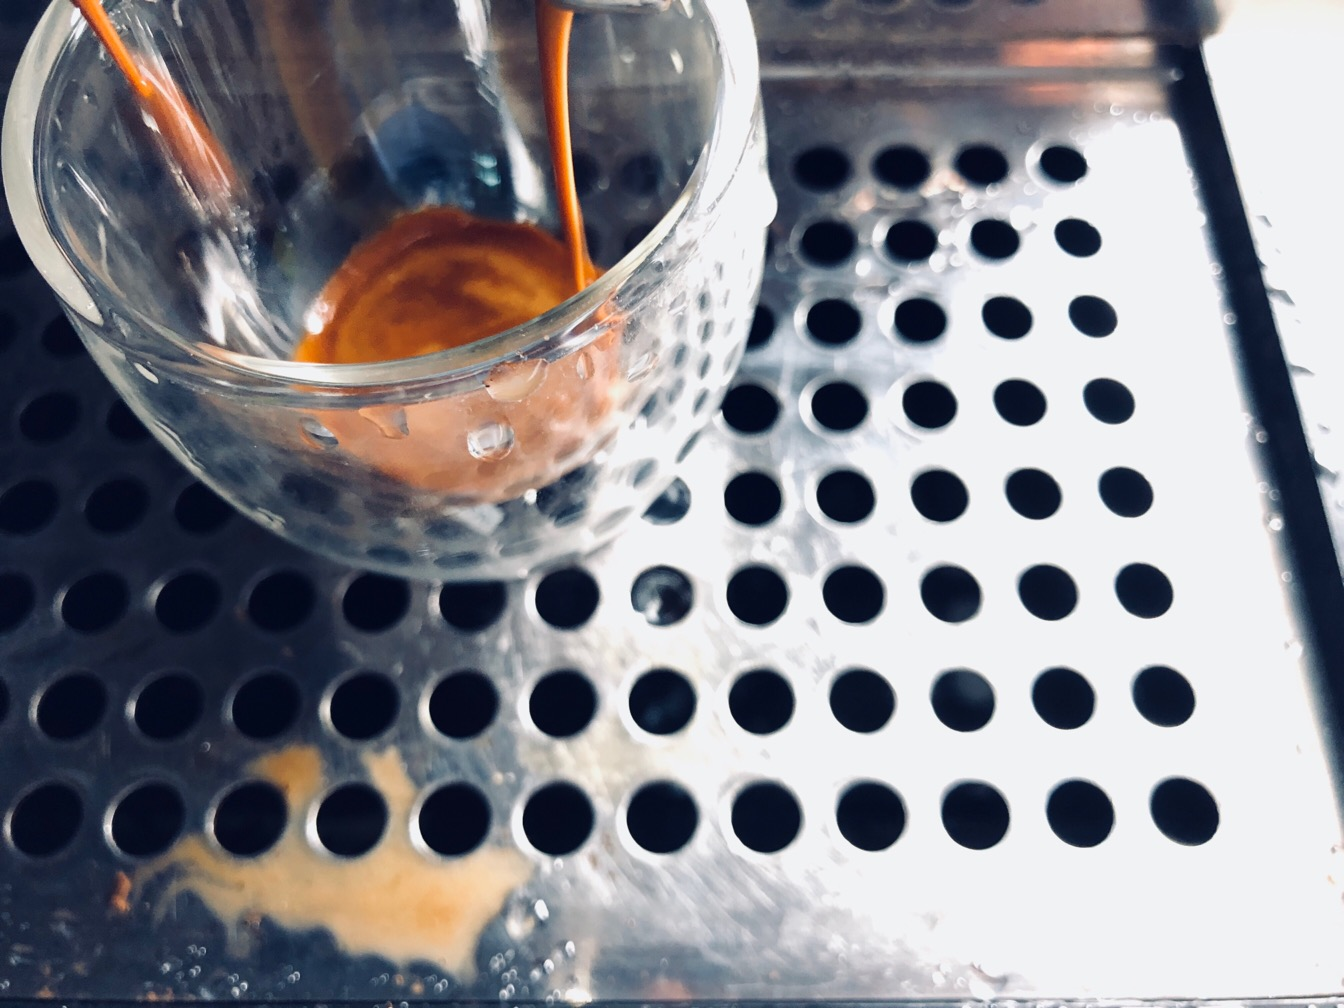 Photo looking down into an espresso cup that has just begun to be filled from a portafilter.